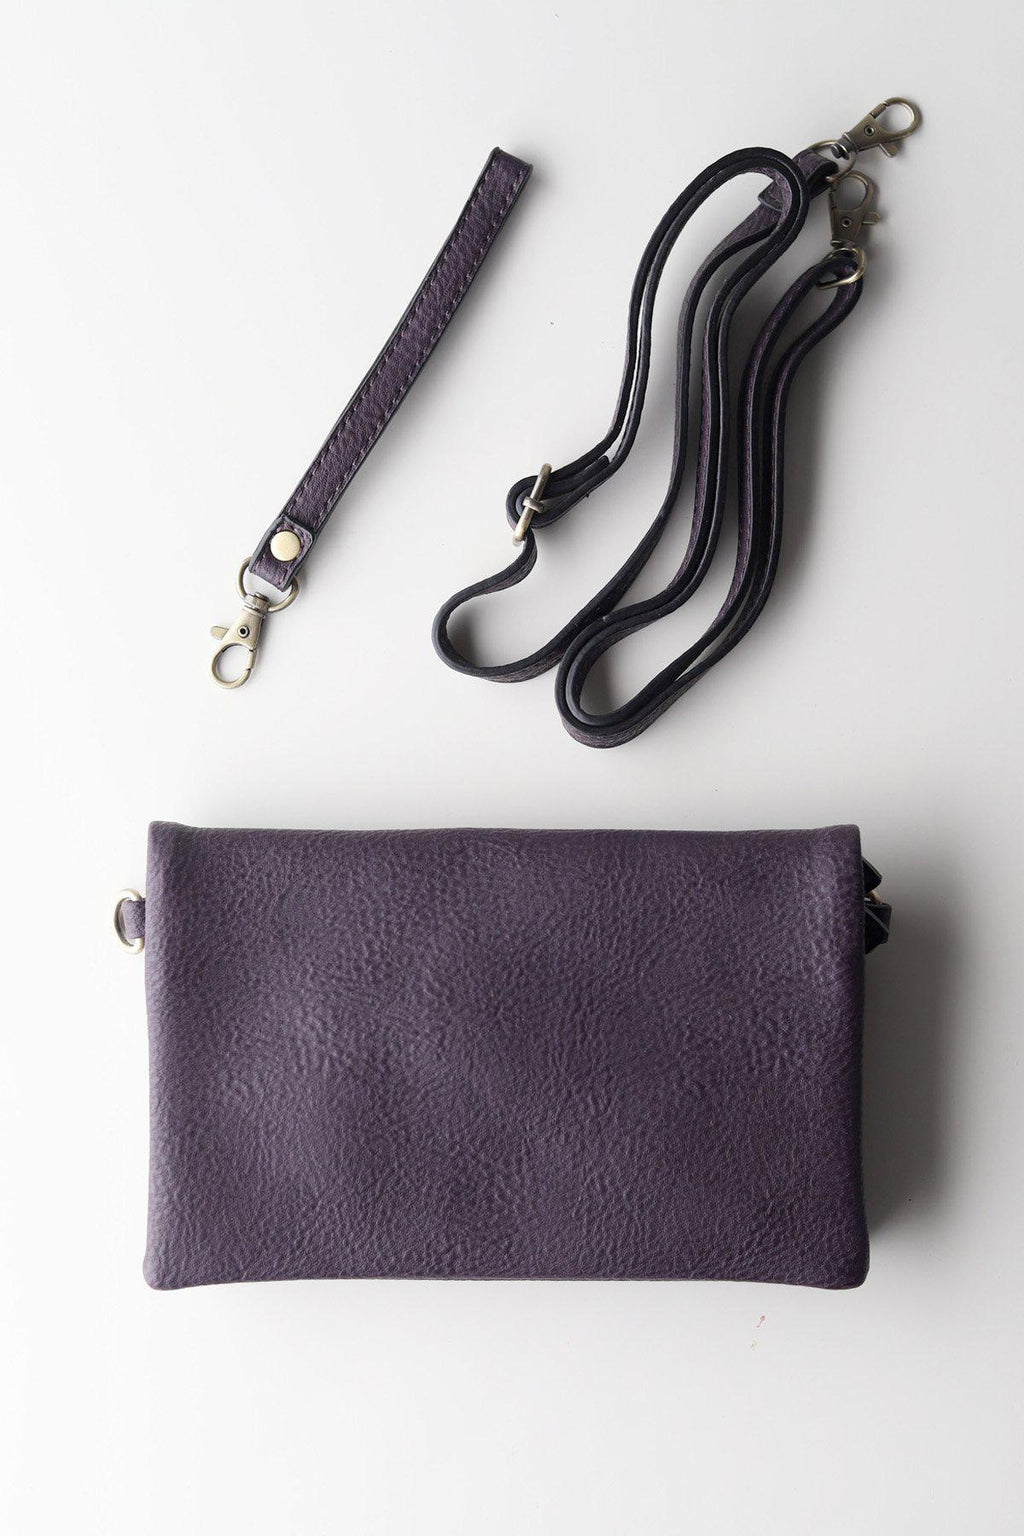 Crossbody Clutch / Eggplant - Gallery 512 Boutique